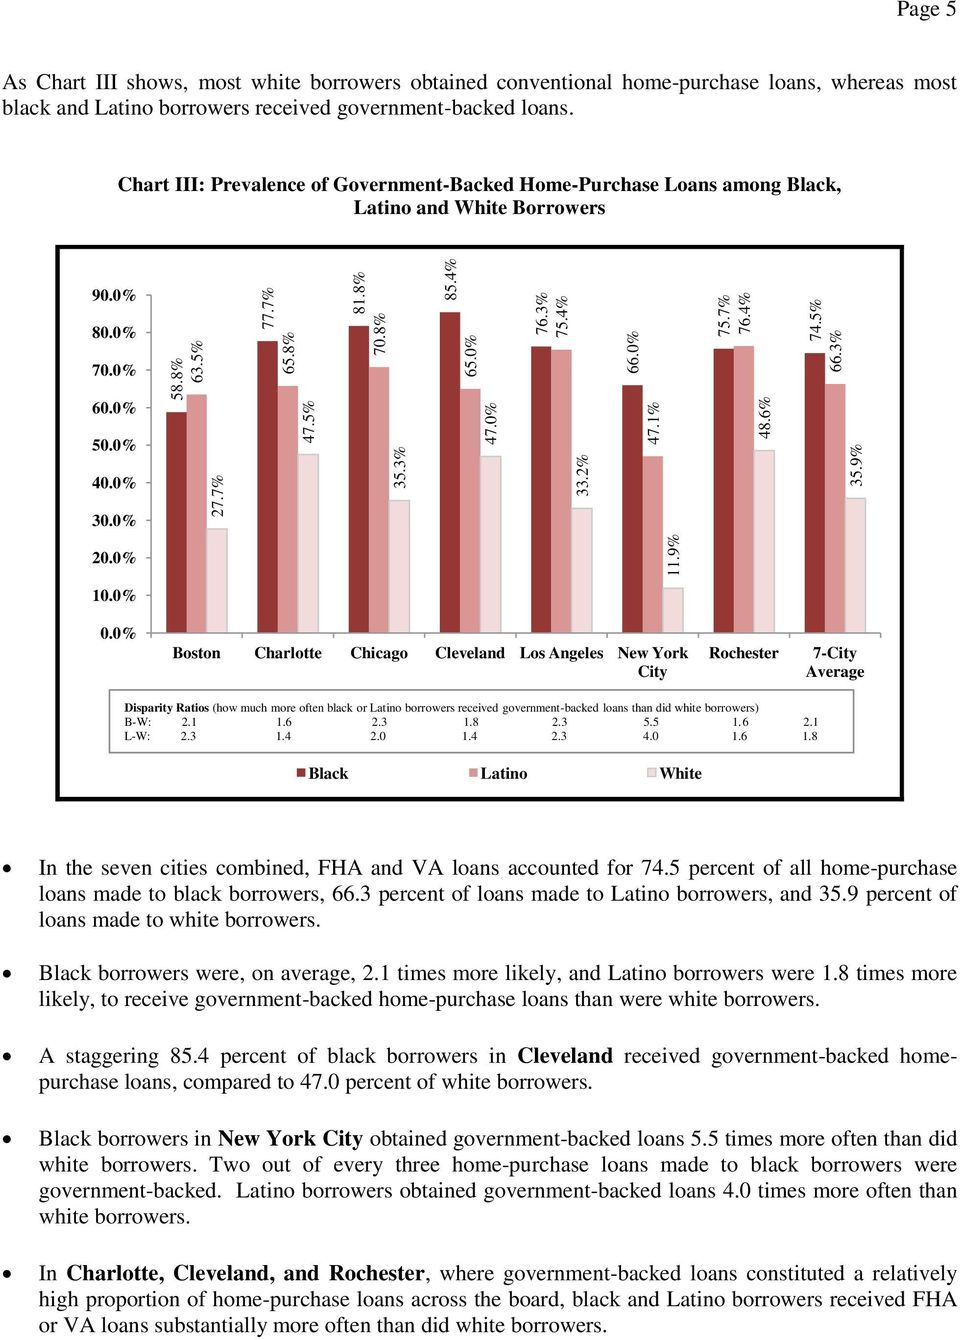 Chart III: Prevalence of Government-Backed Home-Purchase Loans among Black, Latino and White Borrowers 90.0% 80.0% 70.0% 60.0% 50.0% 40.0% 30.0% 20.0% 10.0% 0.